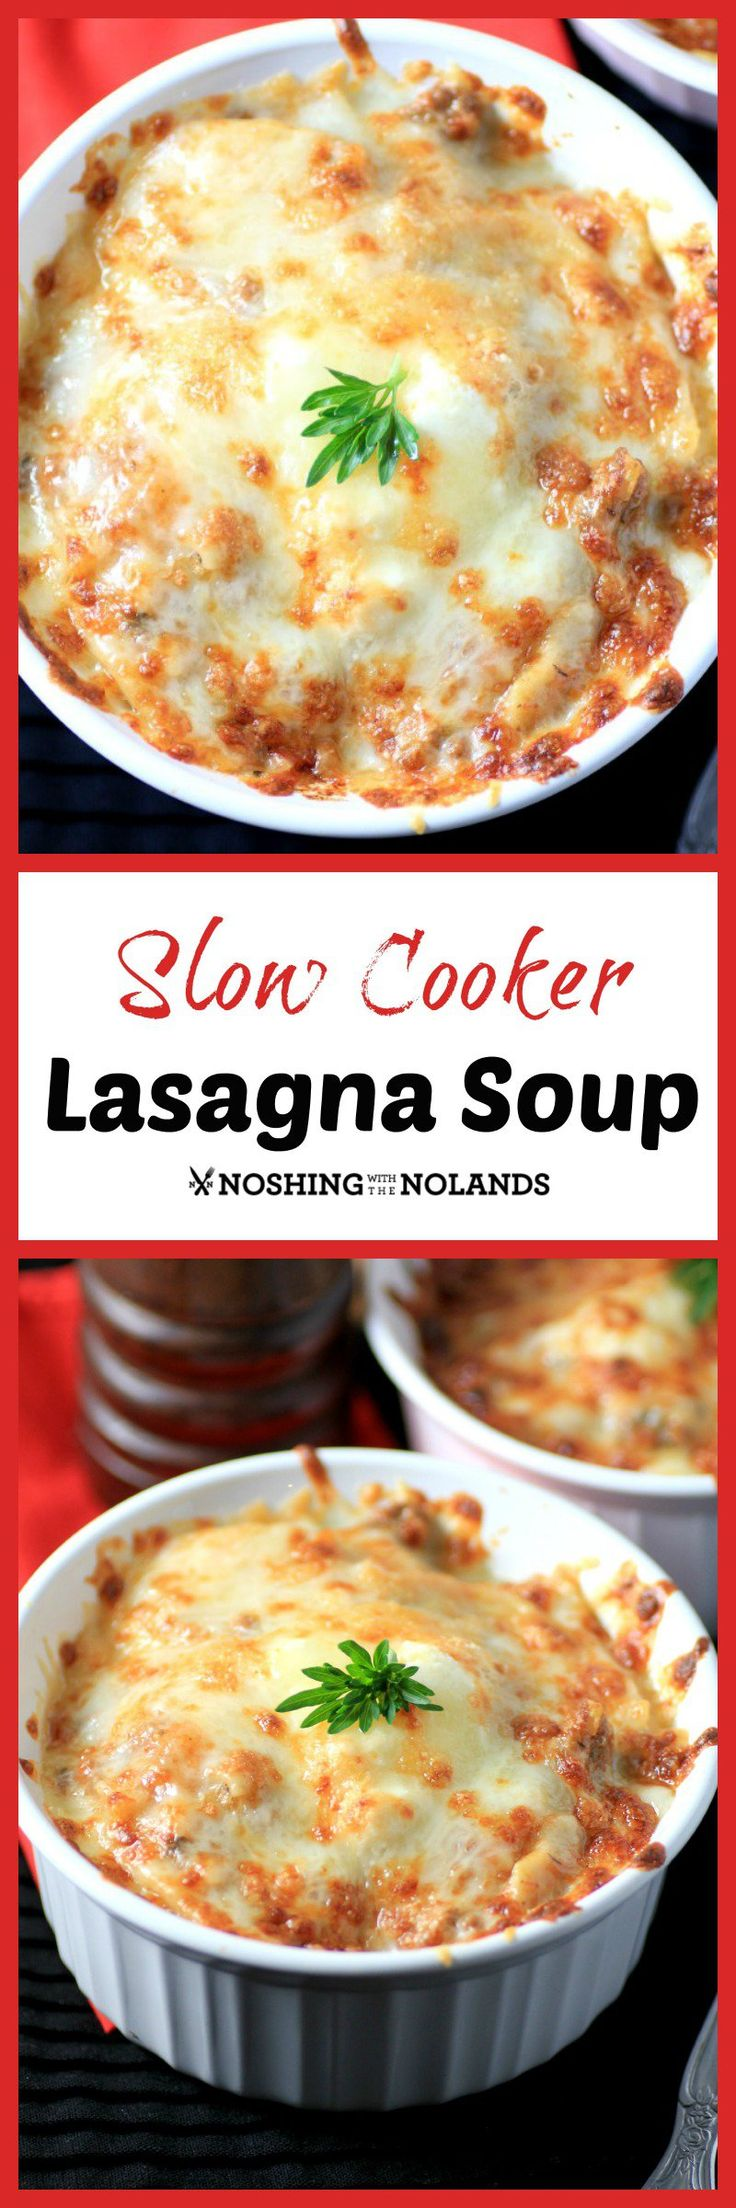 This time it is the amazing Multi Cooker by KitchenAid and with this gorgeous appliance I madeSlow Cooker Lasagna Soupthat my family just adored.